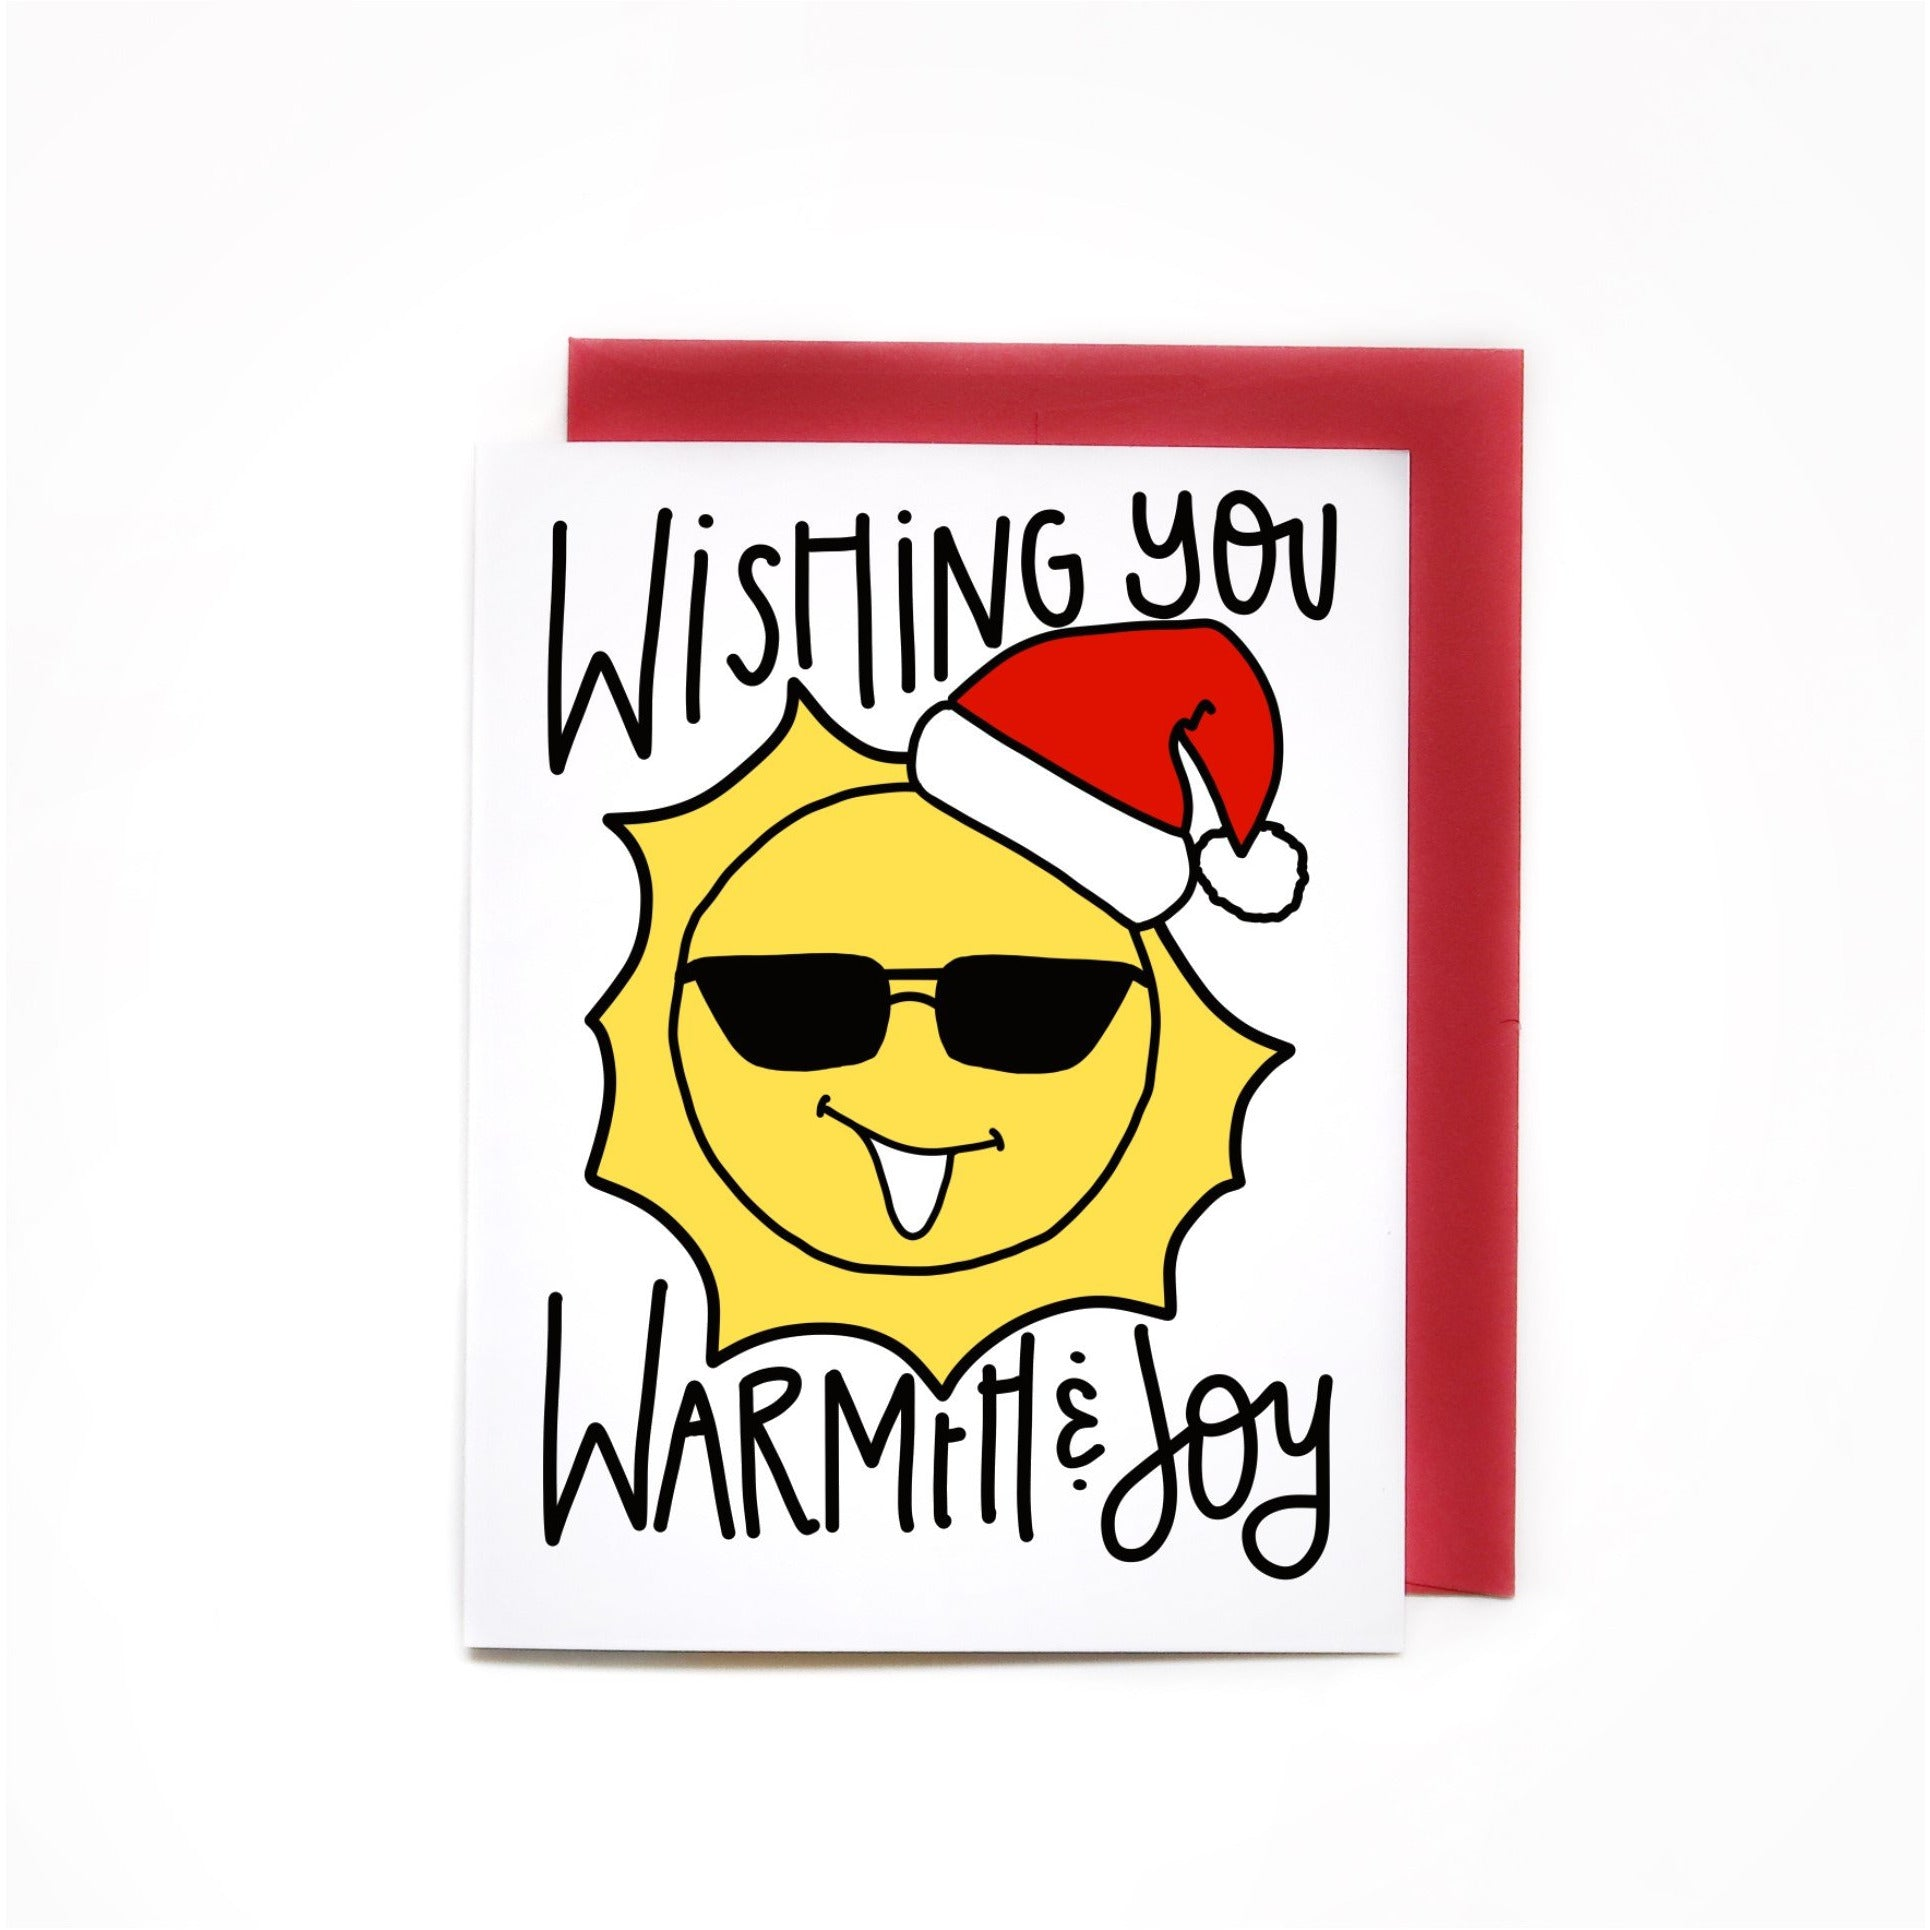 Wishing You Warmth and Joy